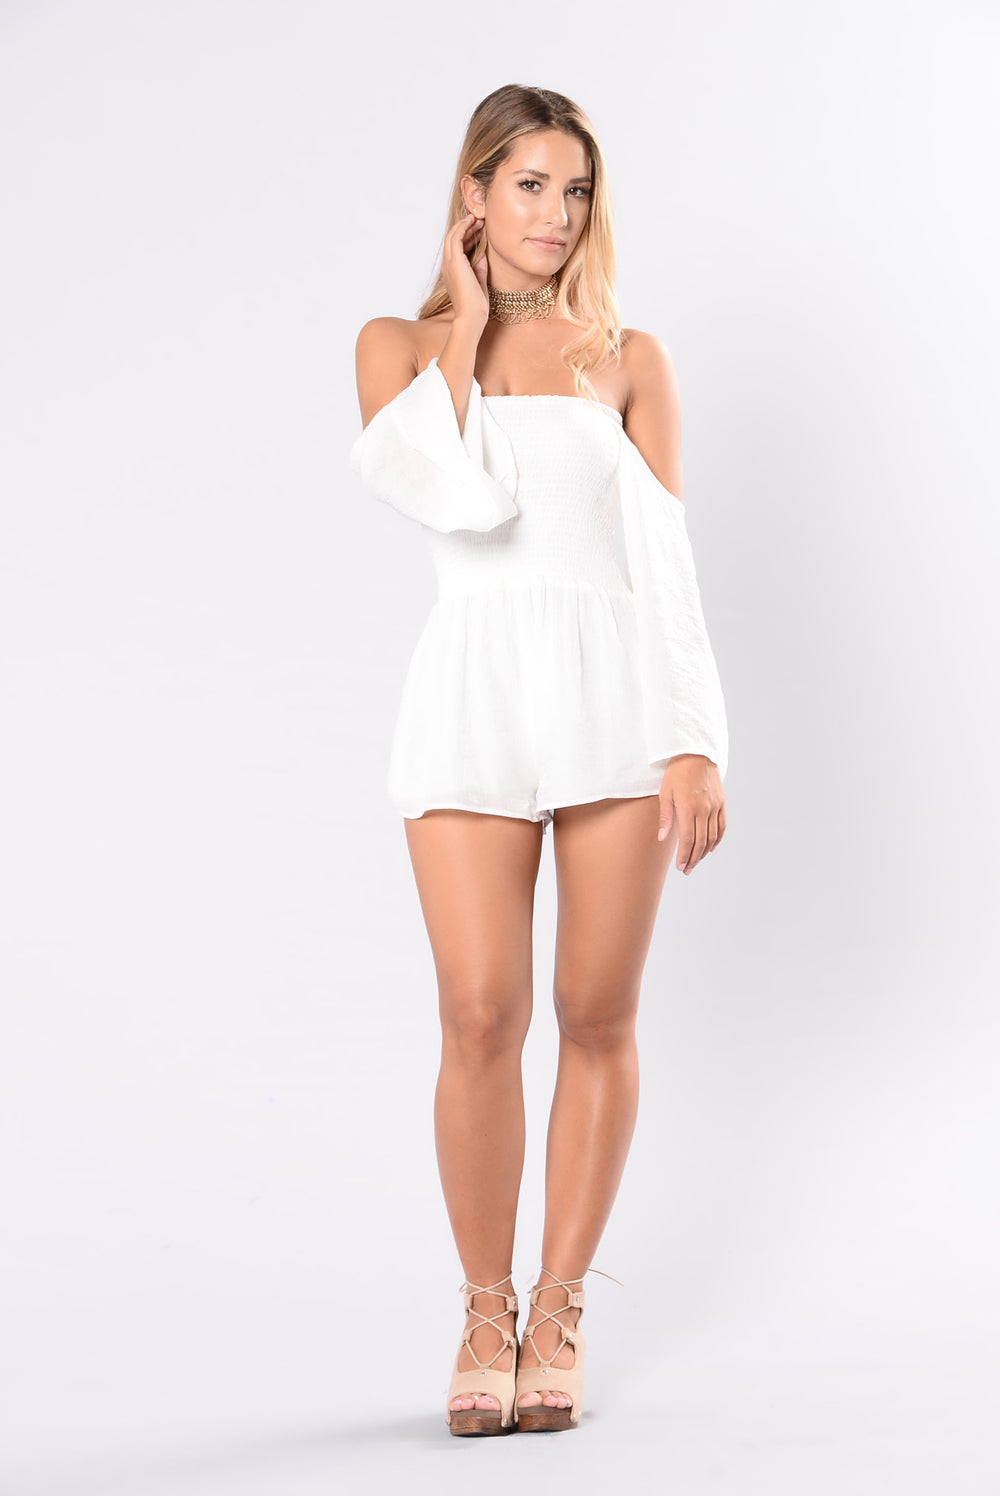 Just Need Your Touch Romper - Ivory